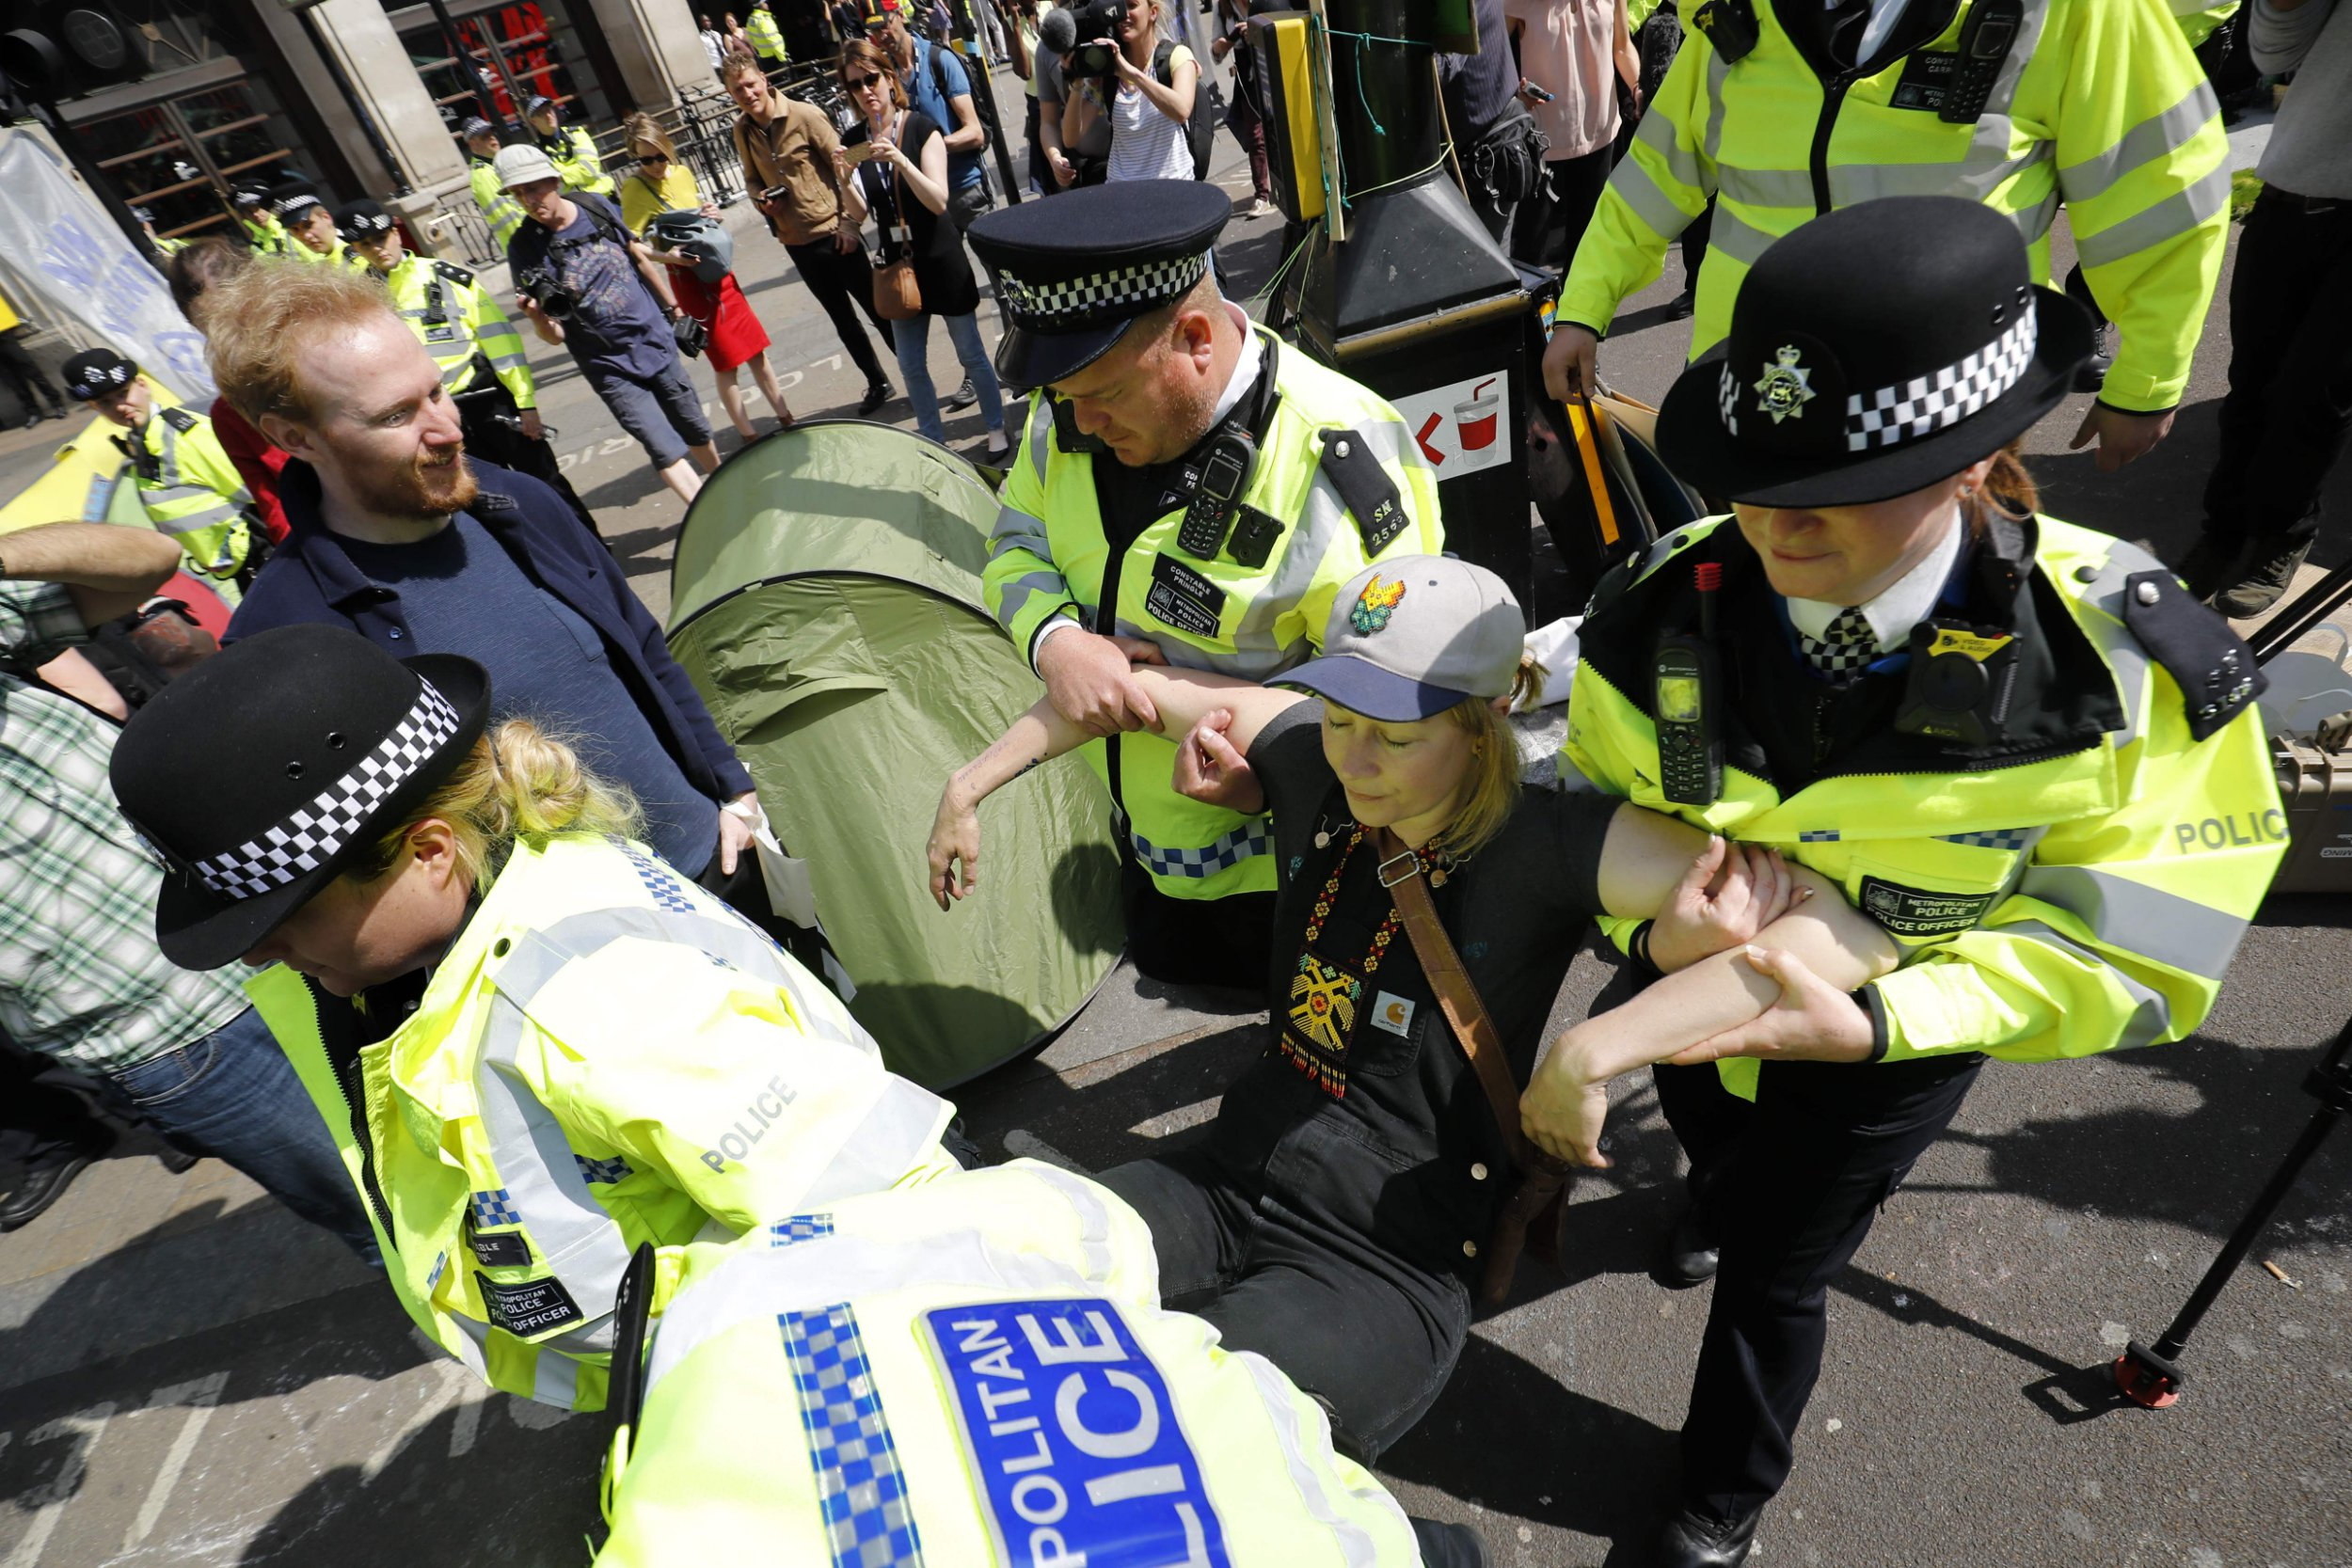 Police move in to remove protesters at Oxford Circus carrying activists away